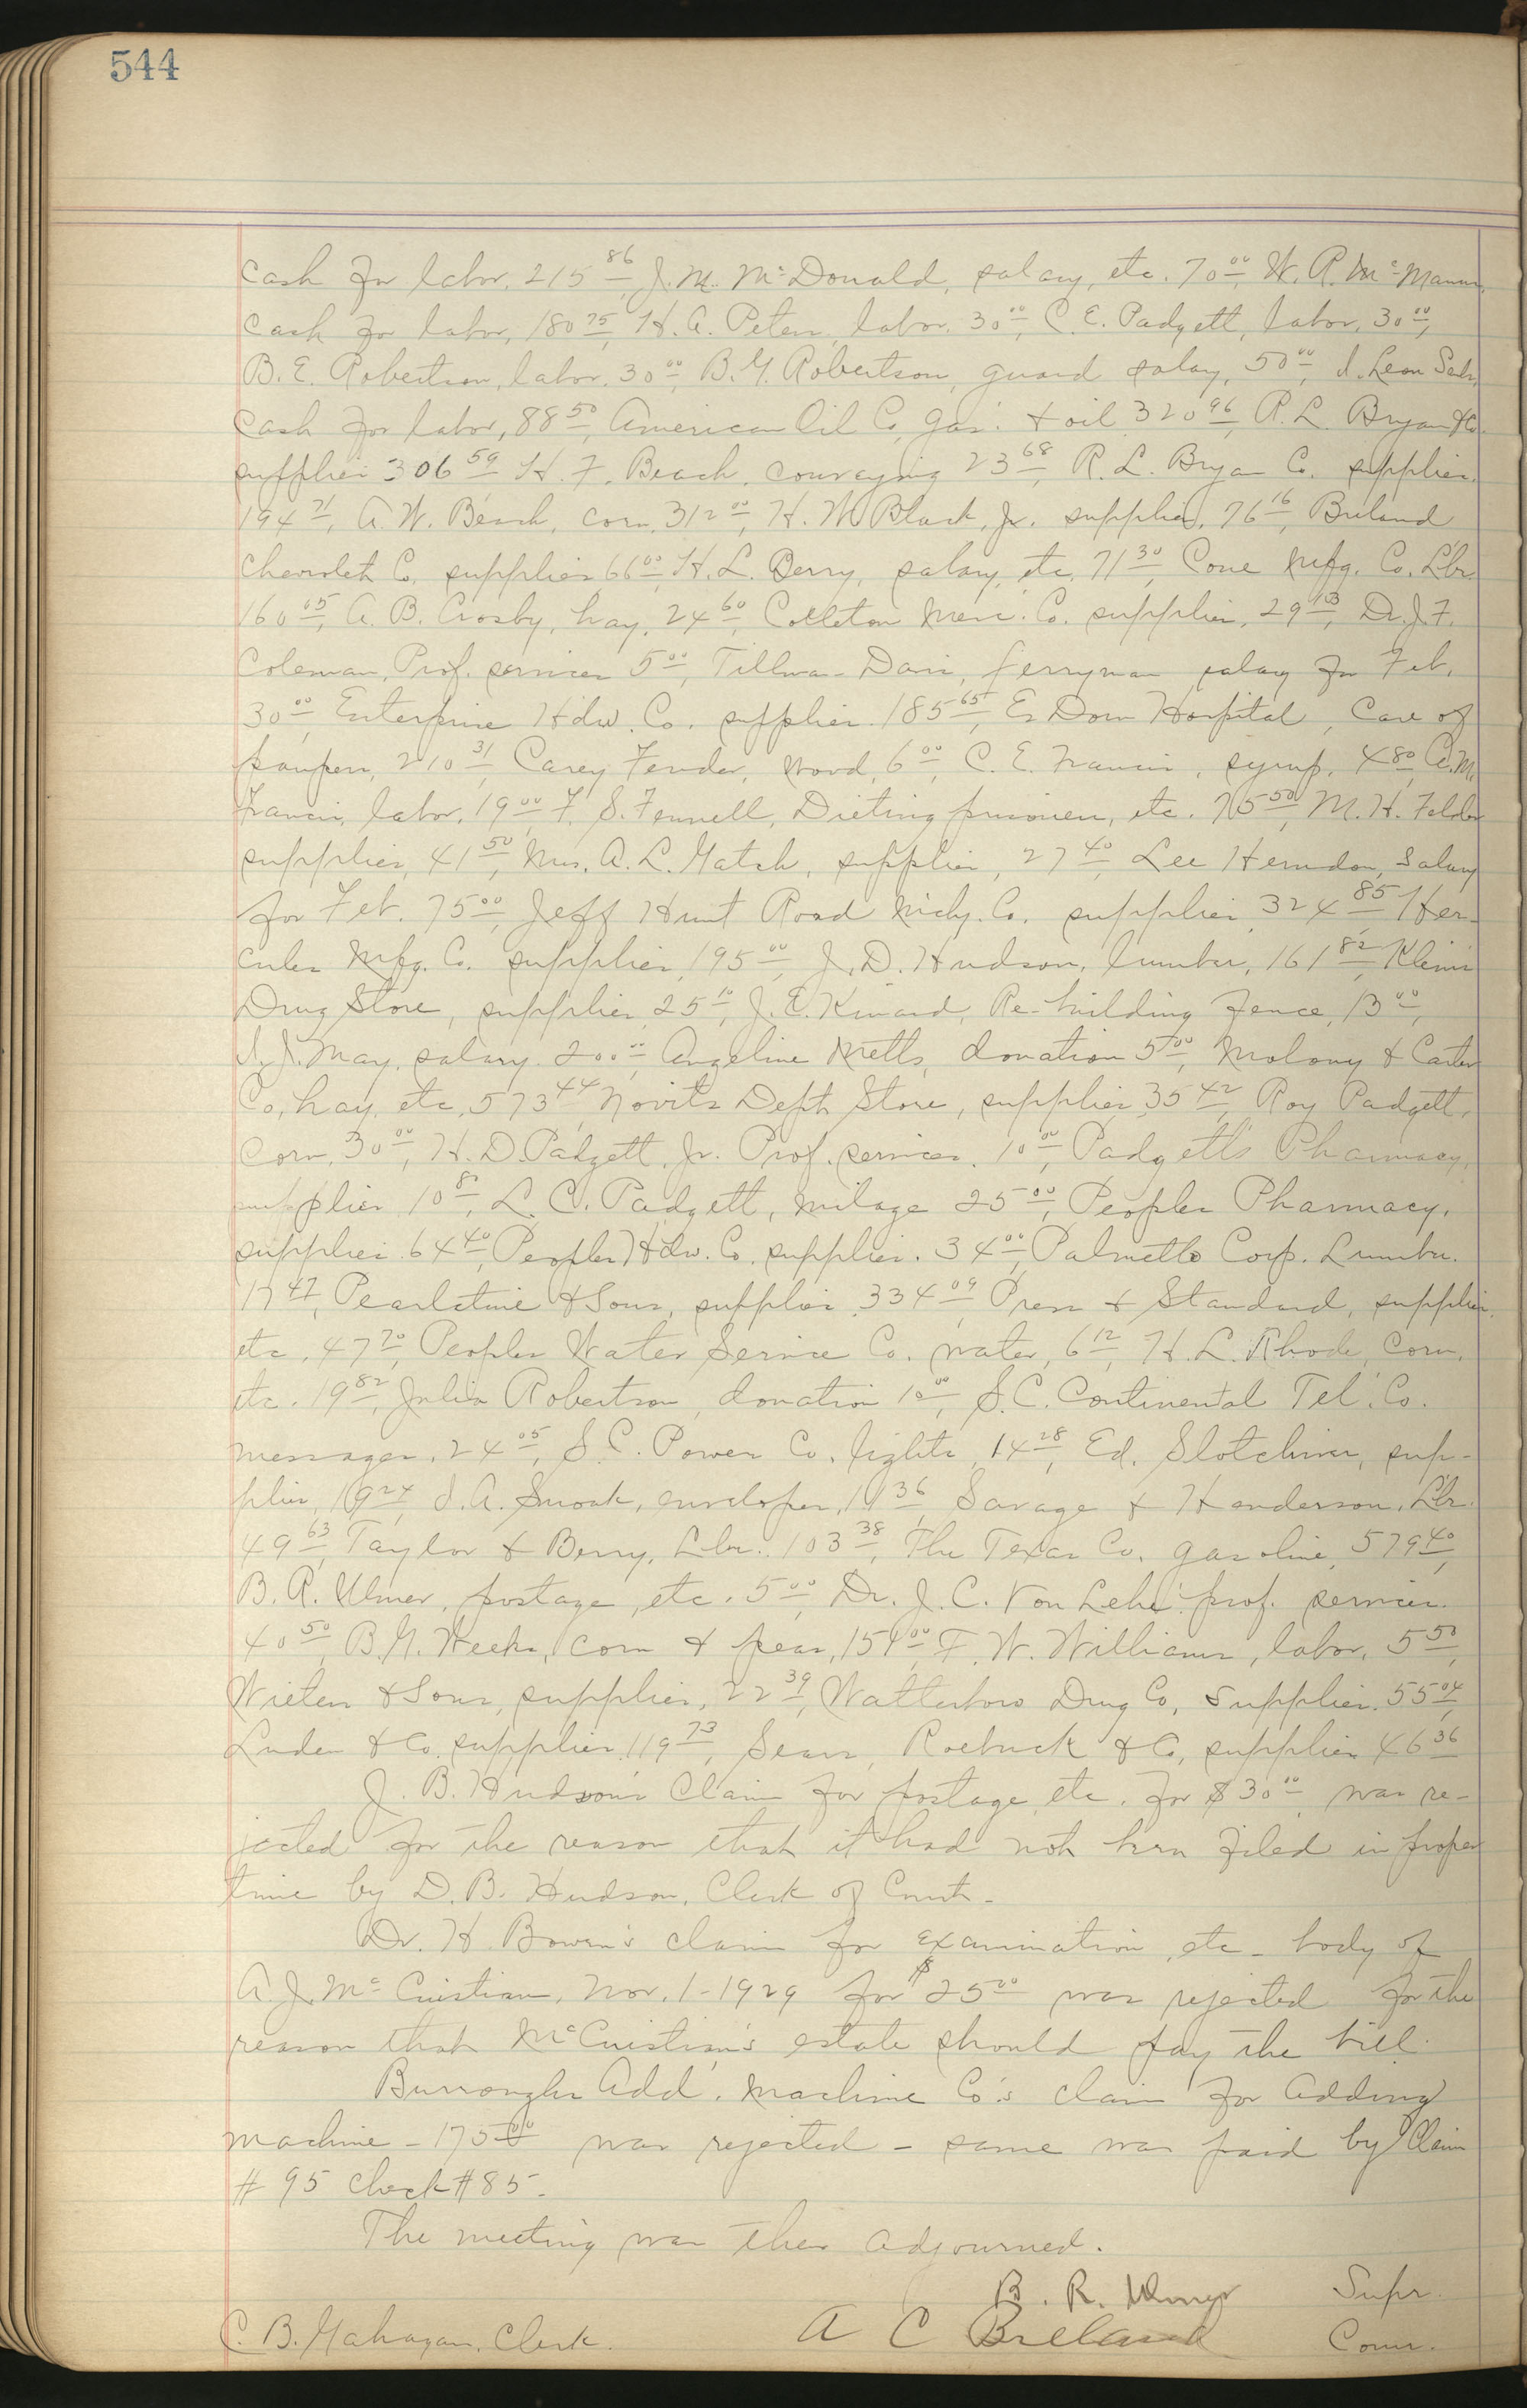 Colleton County Highway Commission Ledger, Page 544